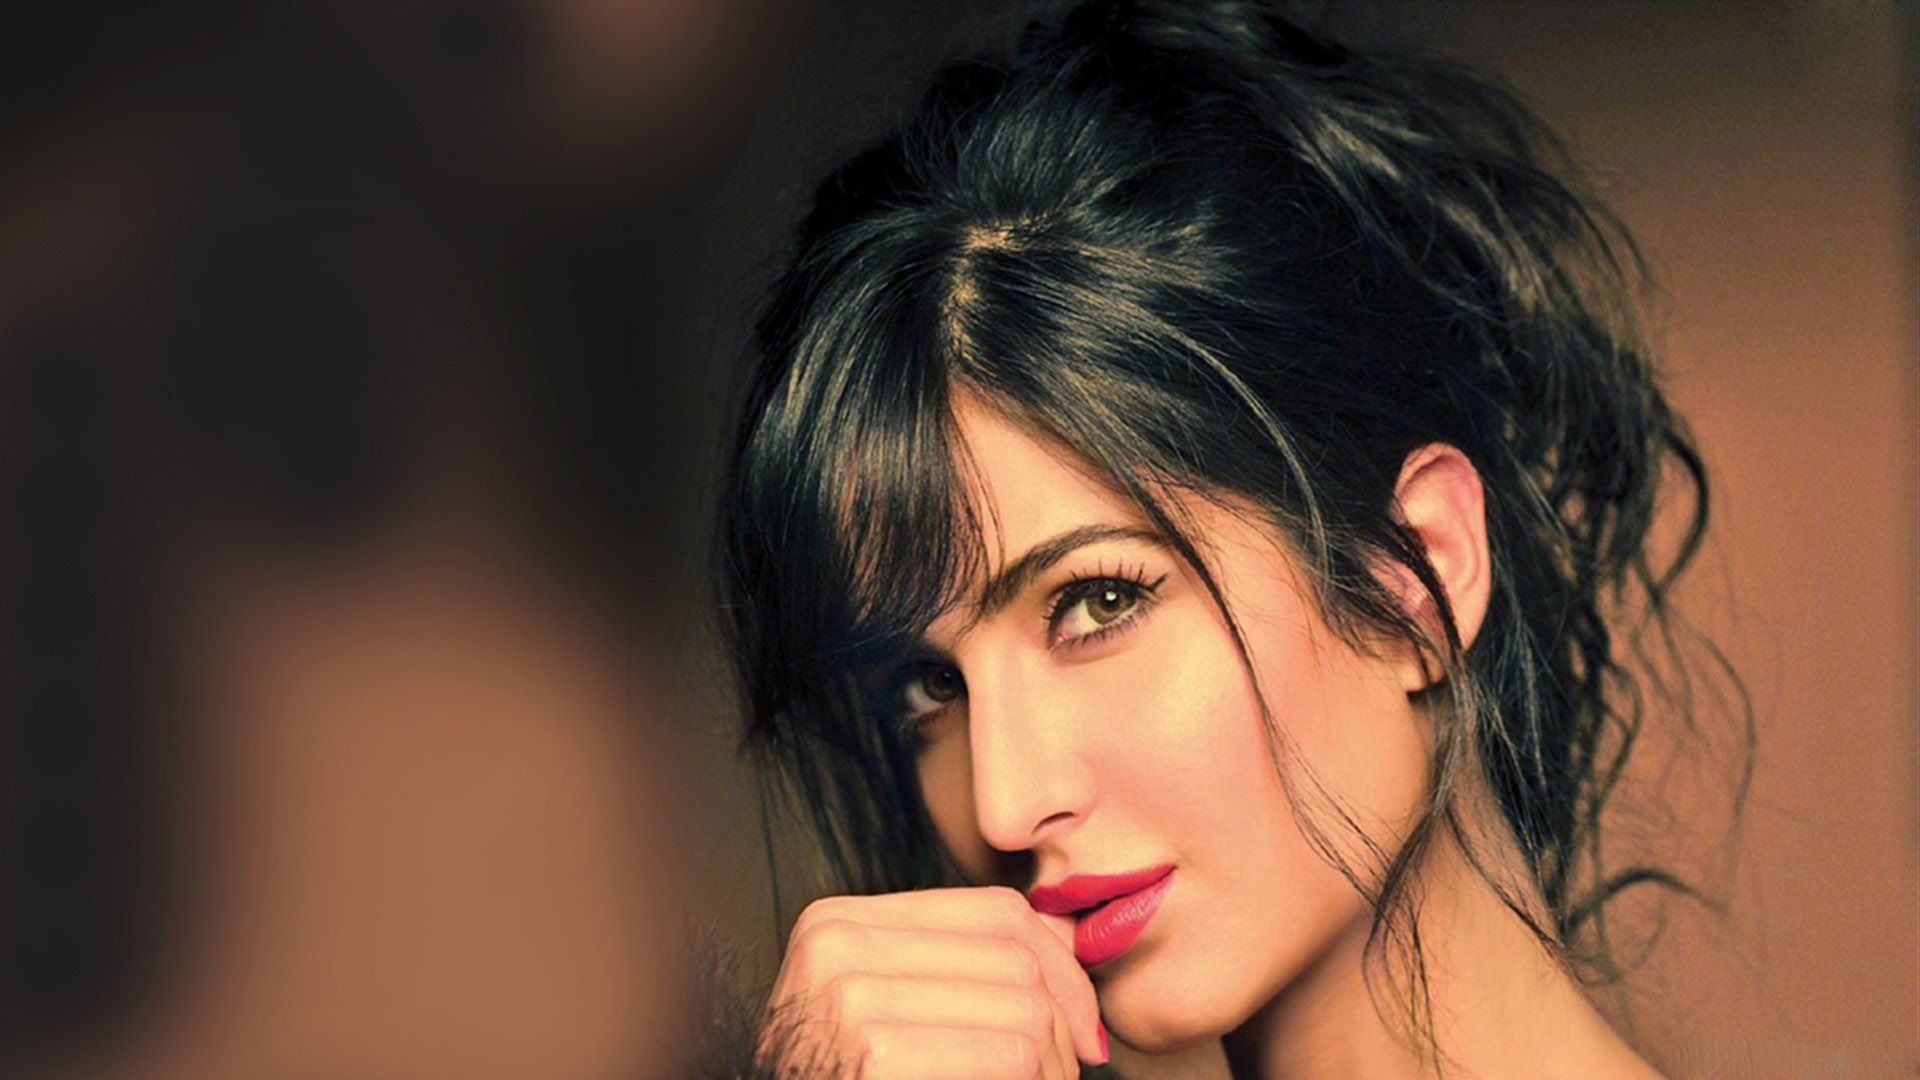 30 Wallpapers In High Quality Katrina Kaif By Dietrich Harkess